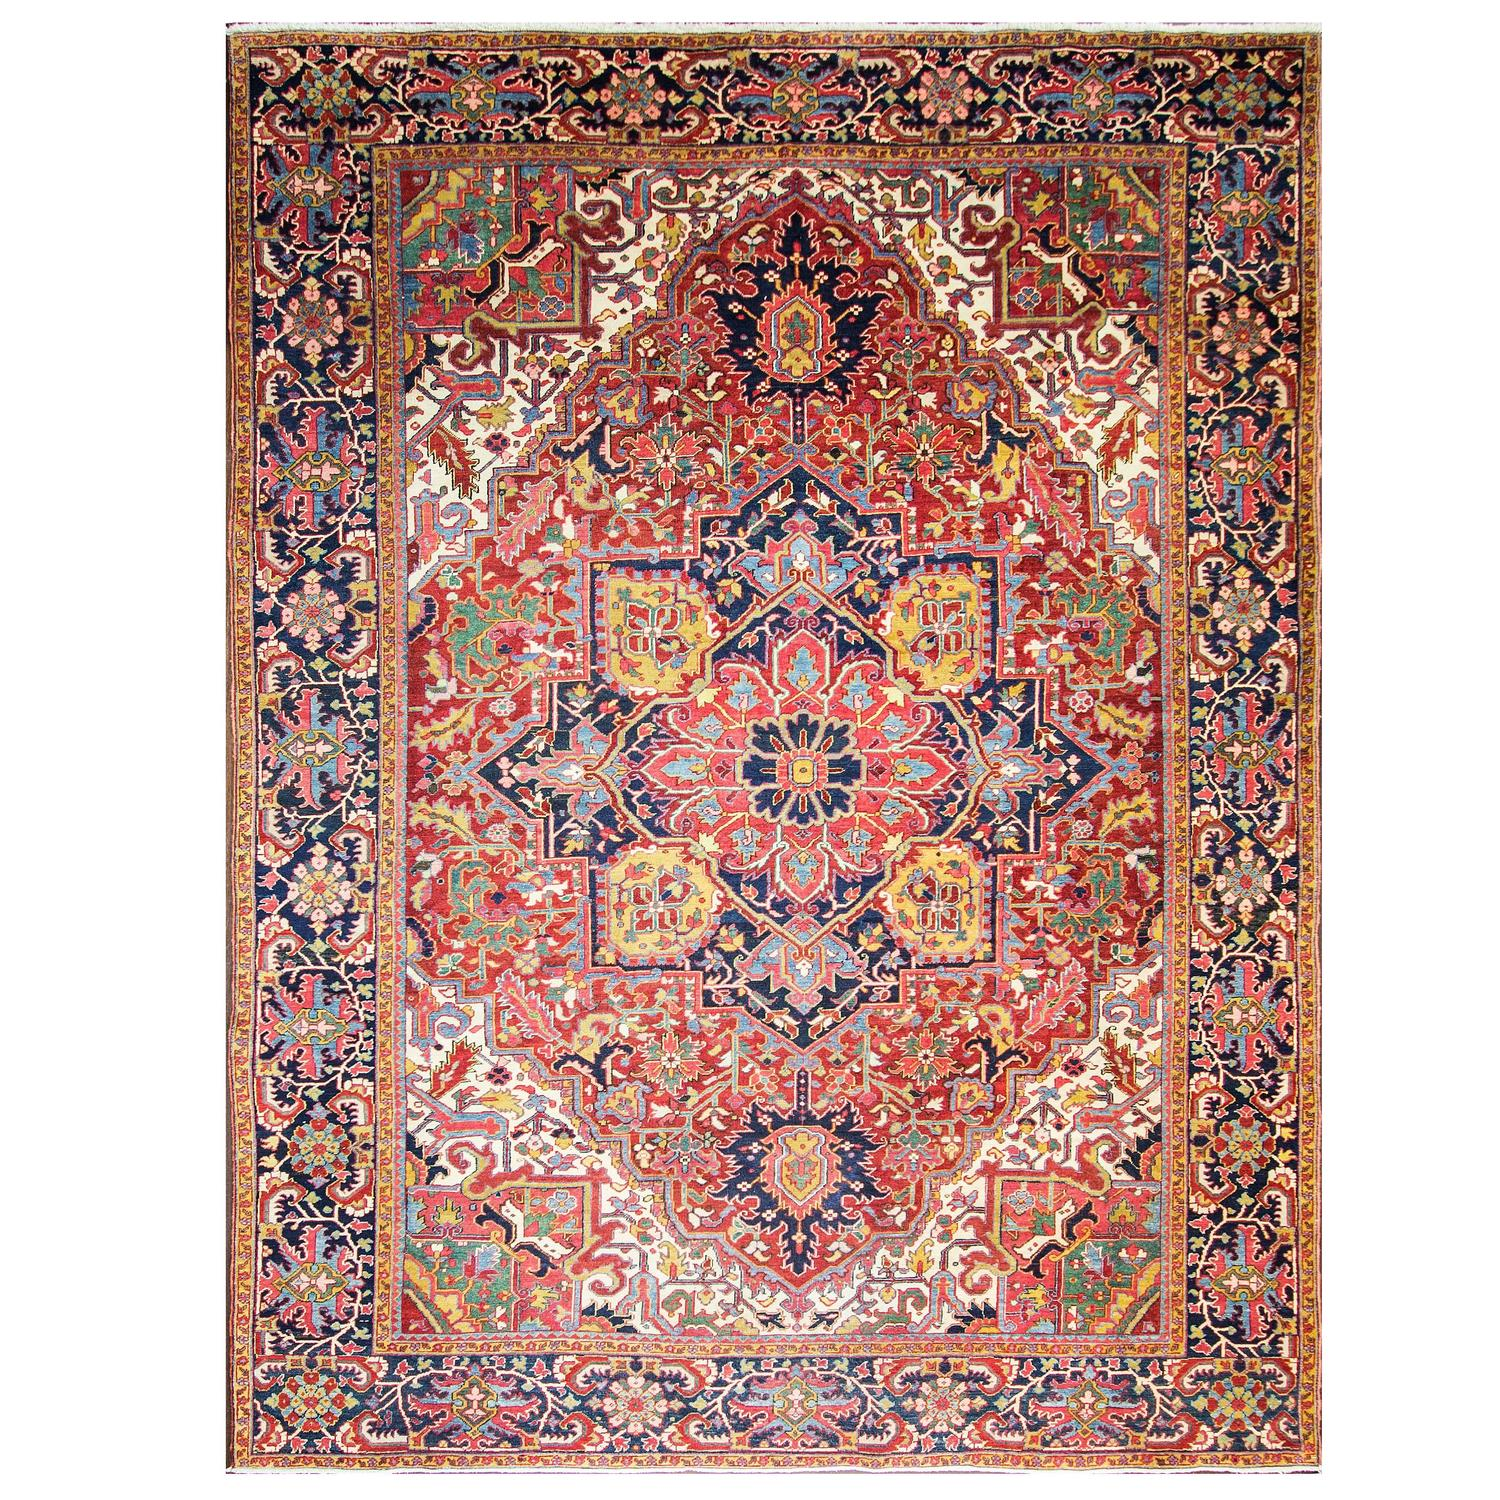 Chromatic Antique Persian Heriz Carpet For Sale At 1stdibs